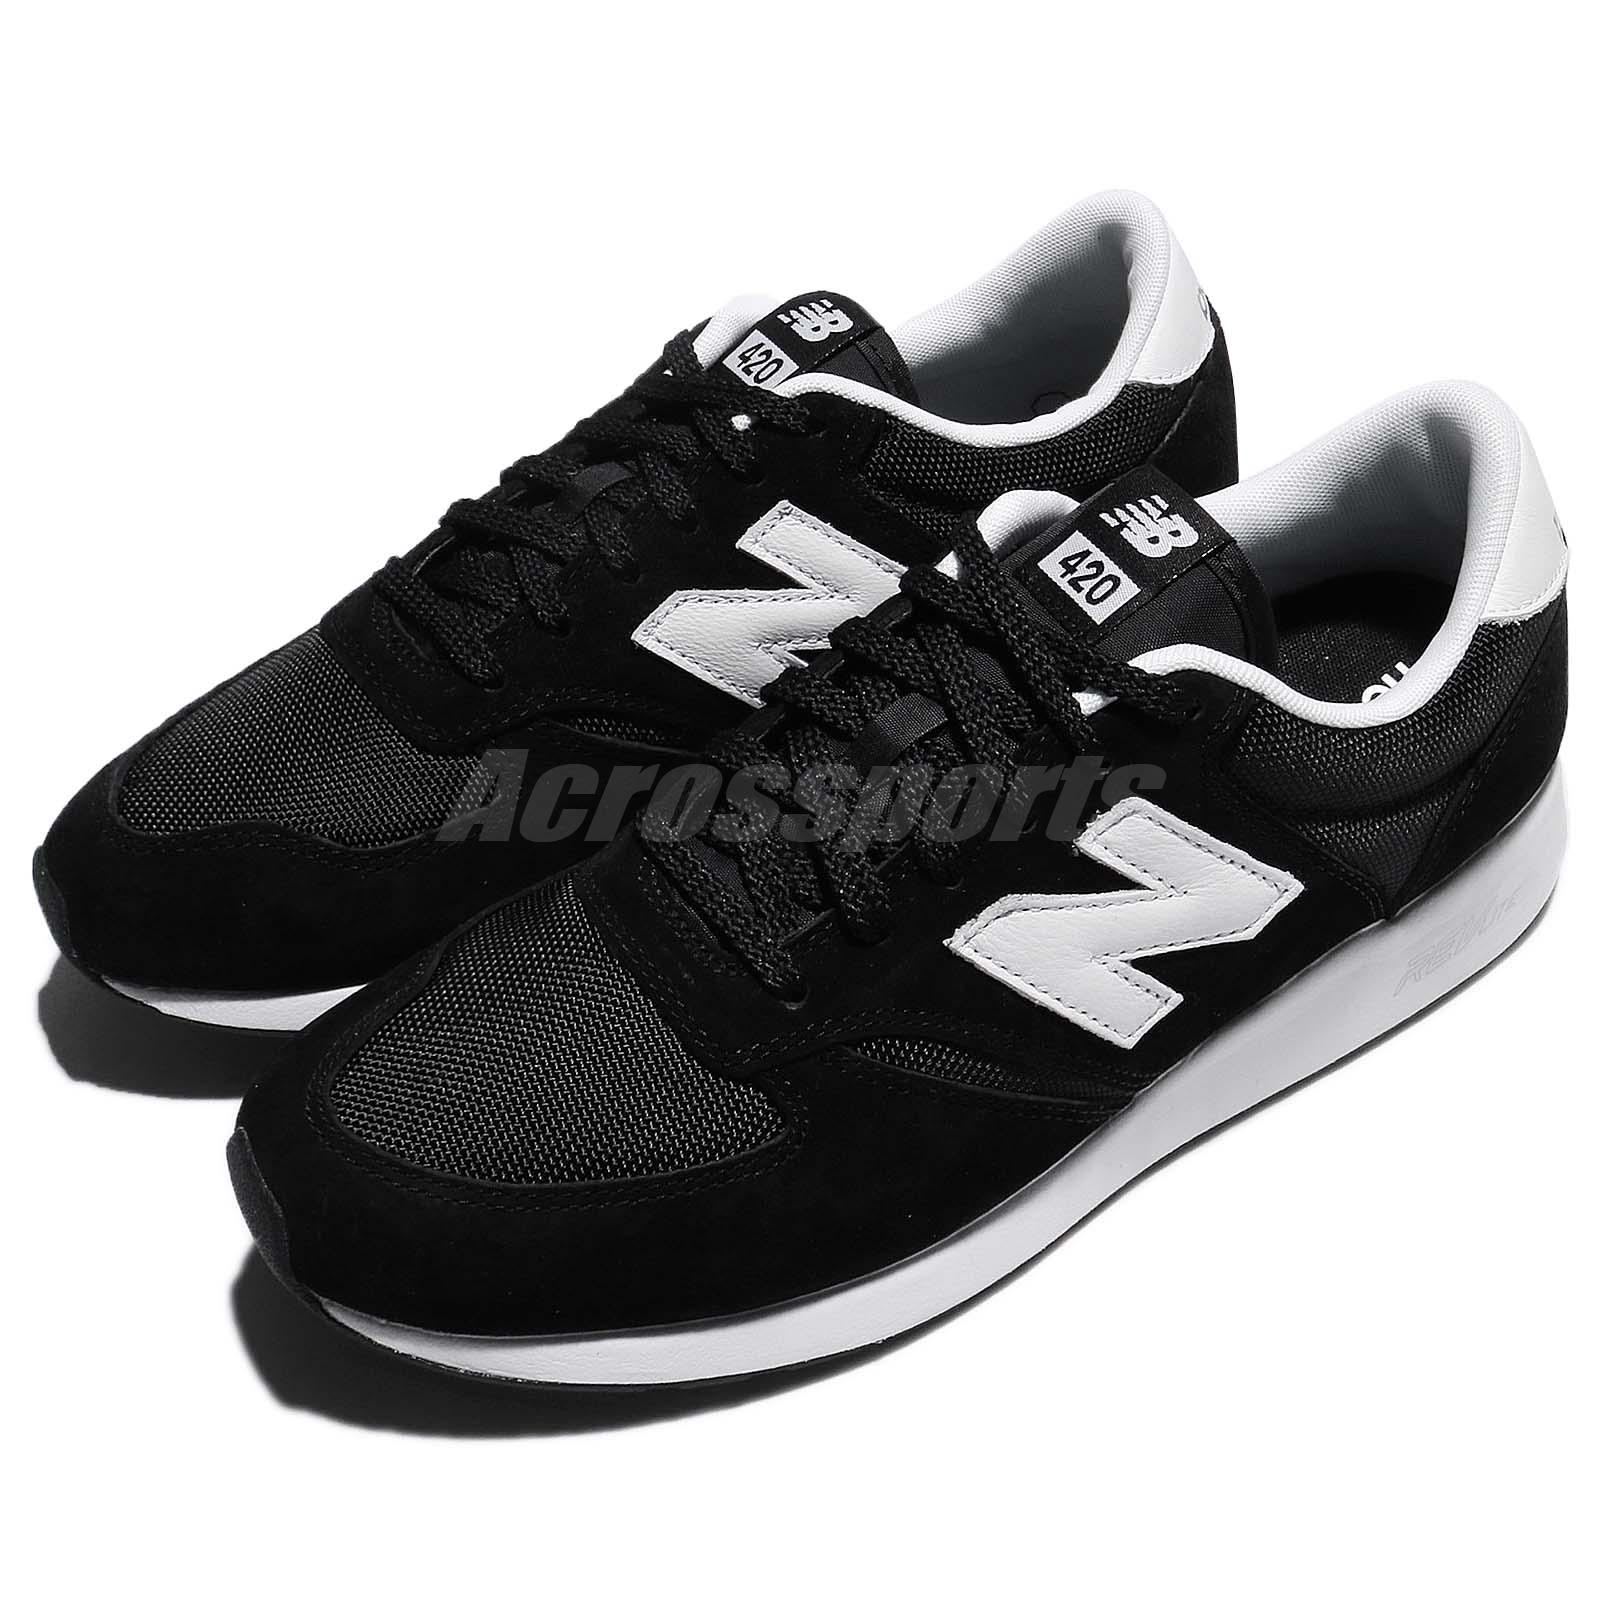 72aa09bbec Details about New Balance MRL420SZ D Black White Mens Running Shoes NB 420  RevLite MRL420SZD